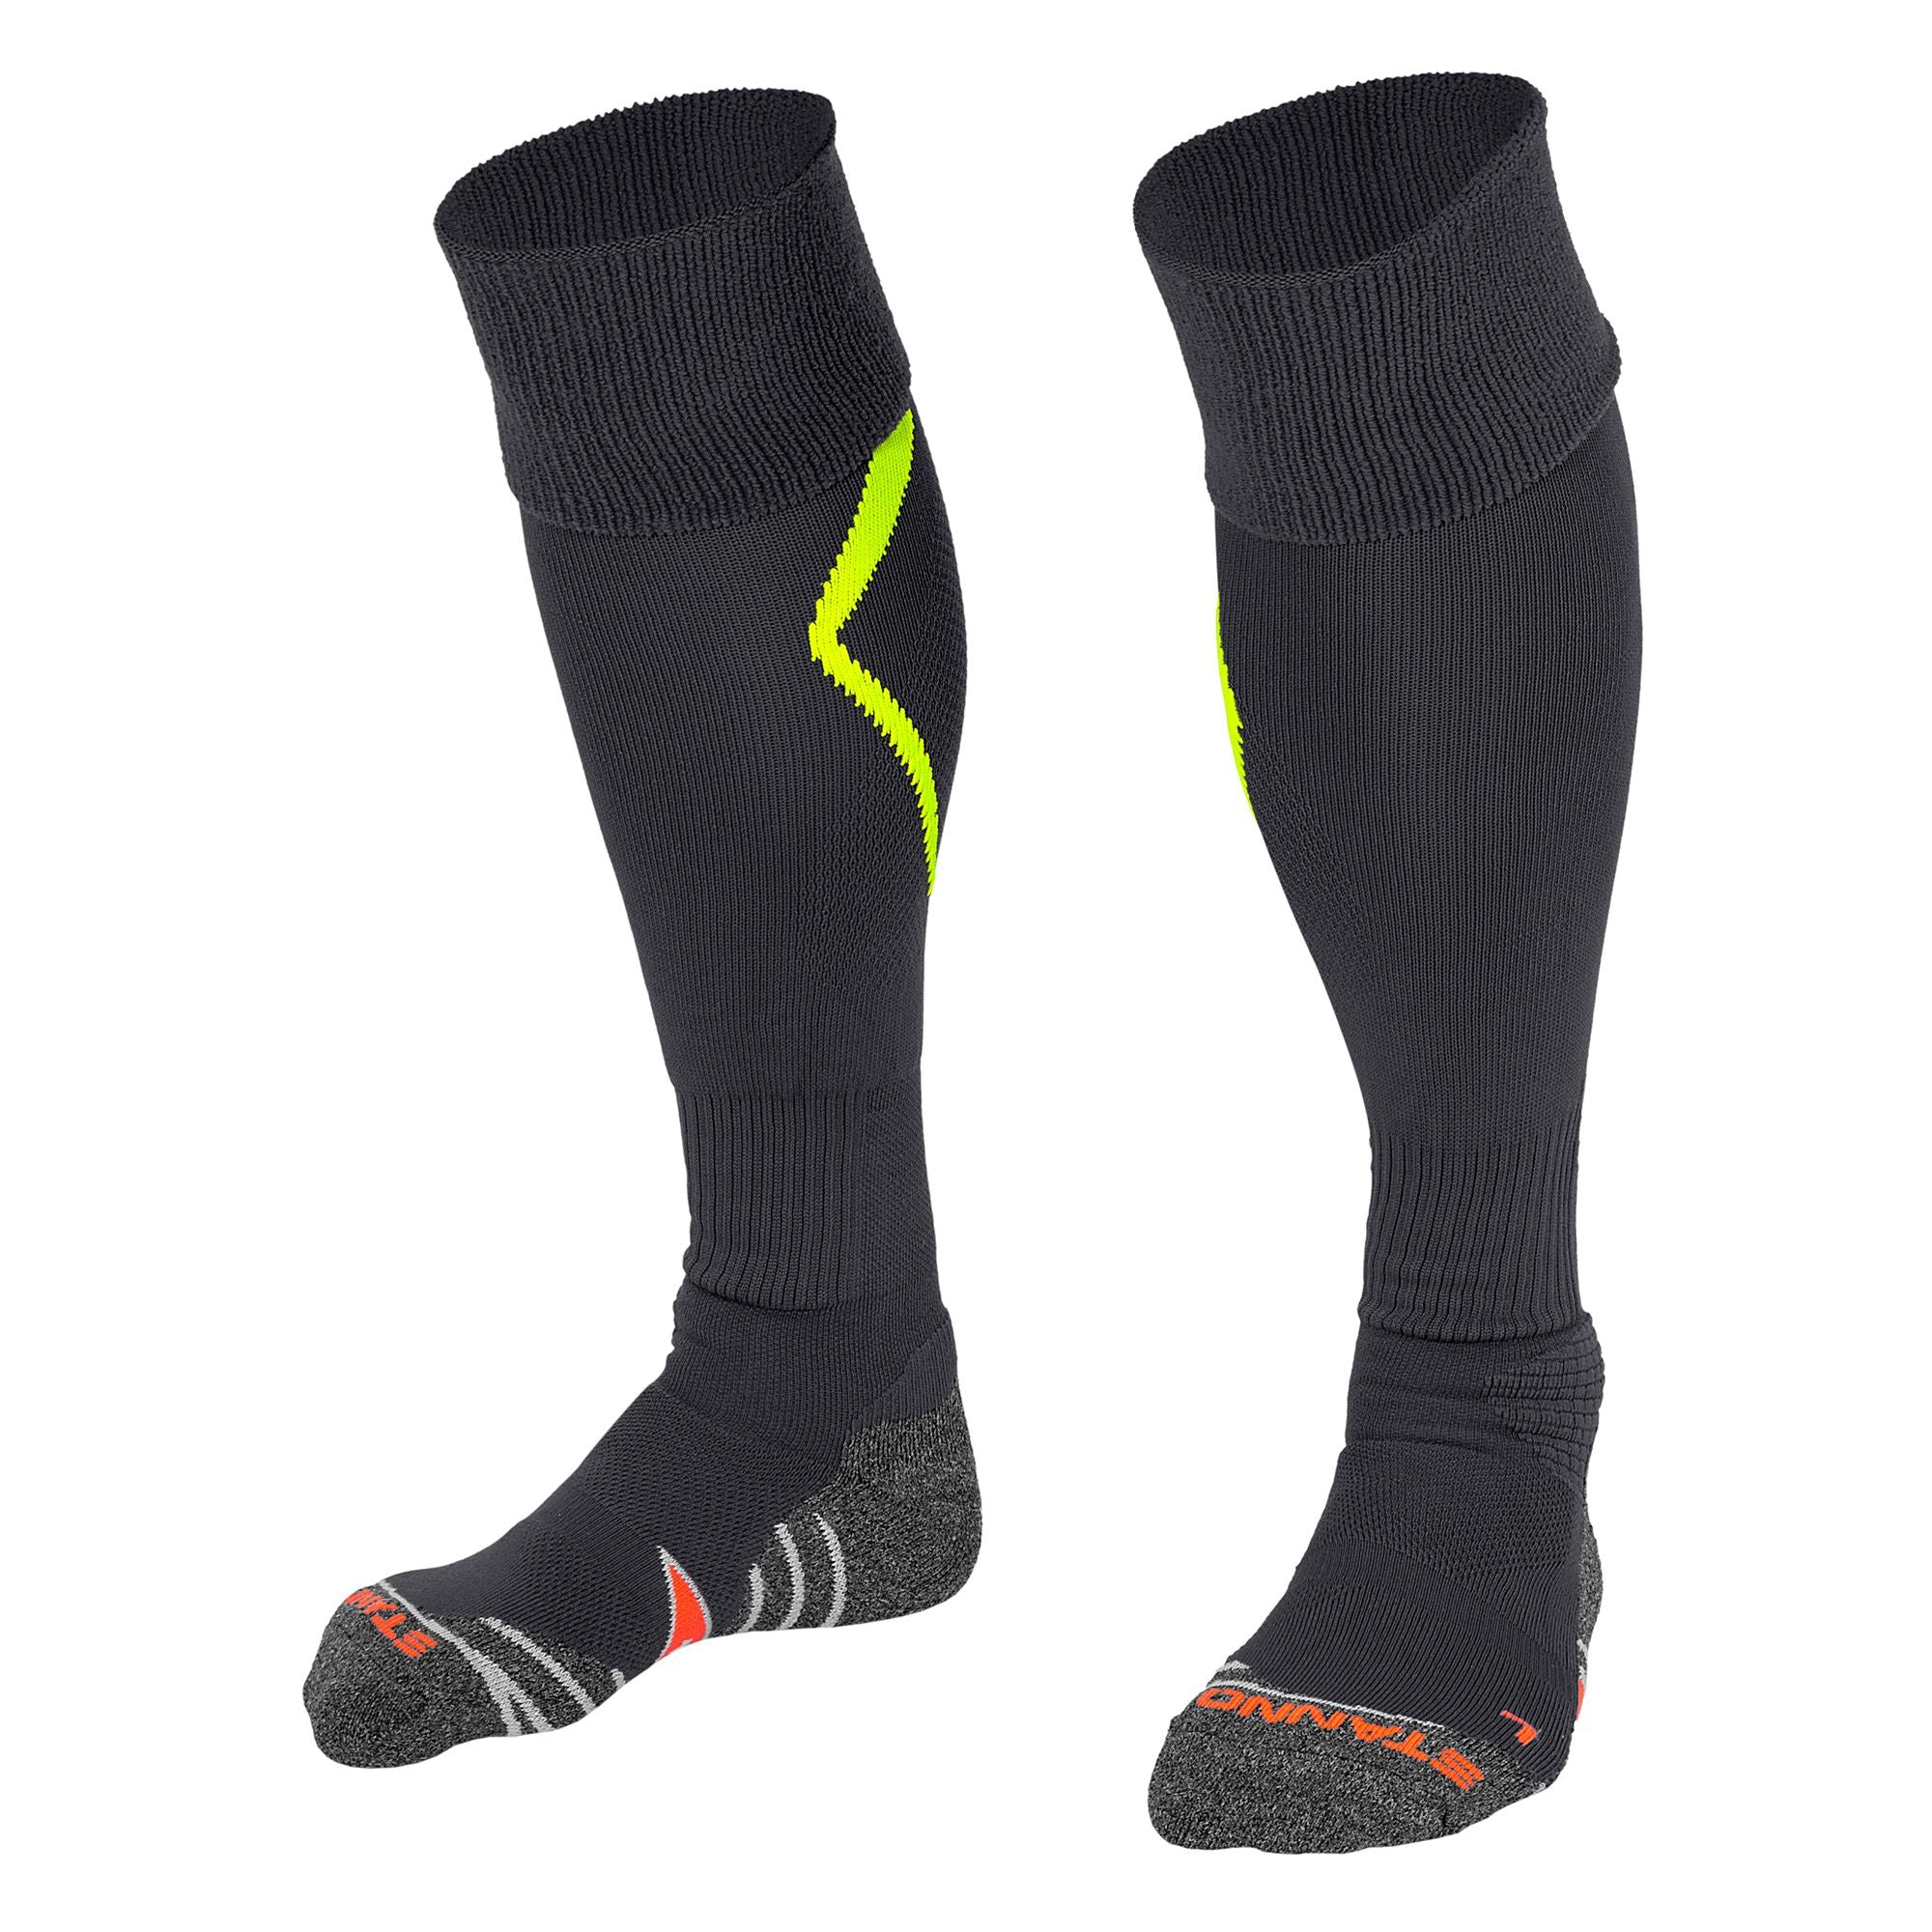 Stanno Forza socks in anthracite with neon yellow arrow design on the calf.